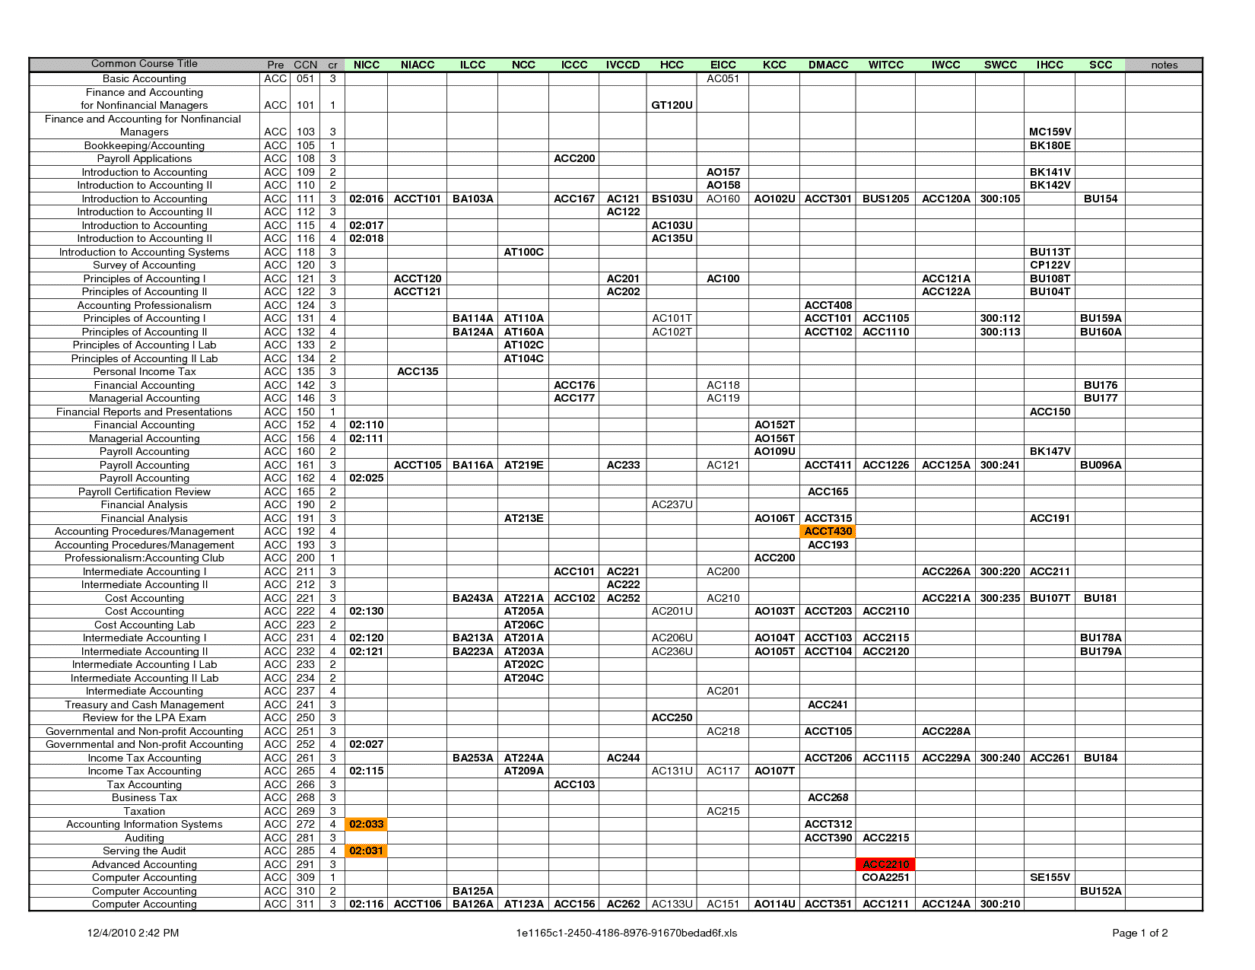 Simple Accounting Spreadsheet Template Free Printable Ledger Sheets PDF Free Bookkeeping Spreadsheet For Small Business Free Printable 6 Column Sheets Free Printable Daily Ledger Free Excel Accounting Spreadsheet Simple Bookkeeping Sheet  Simple Bookkeeping Sheet Bookkeeping Spreadsheet Template Free Spreadsheet Templates for Busines